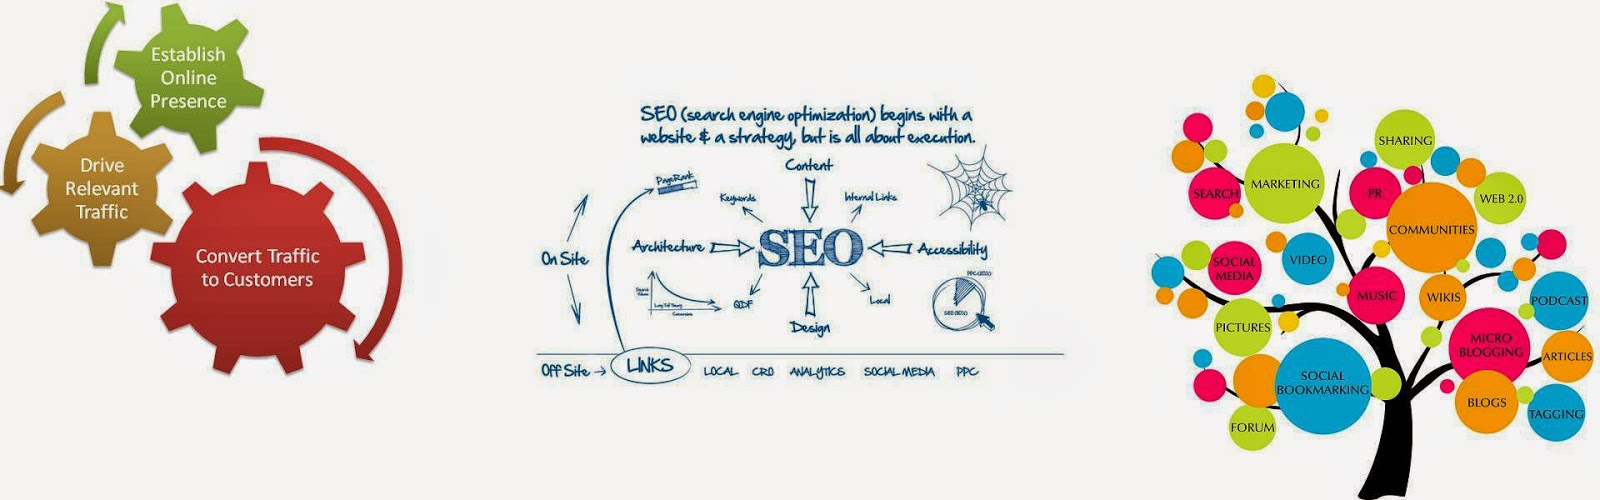 SEO services in Bihta Patna, SEO Compay in Patna, SEO Services in Bihta patna